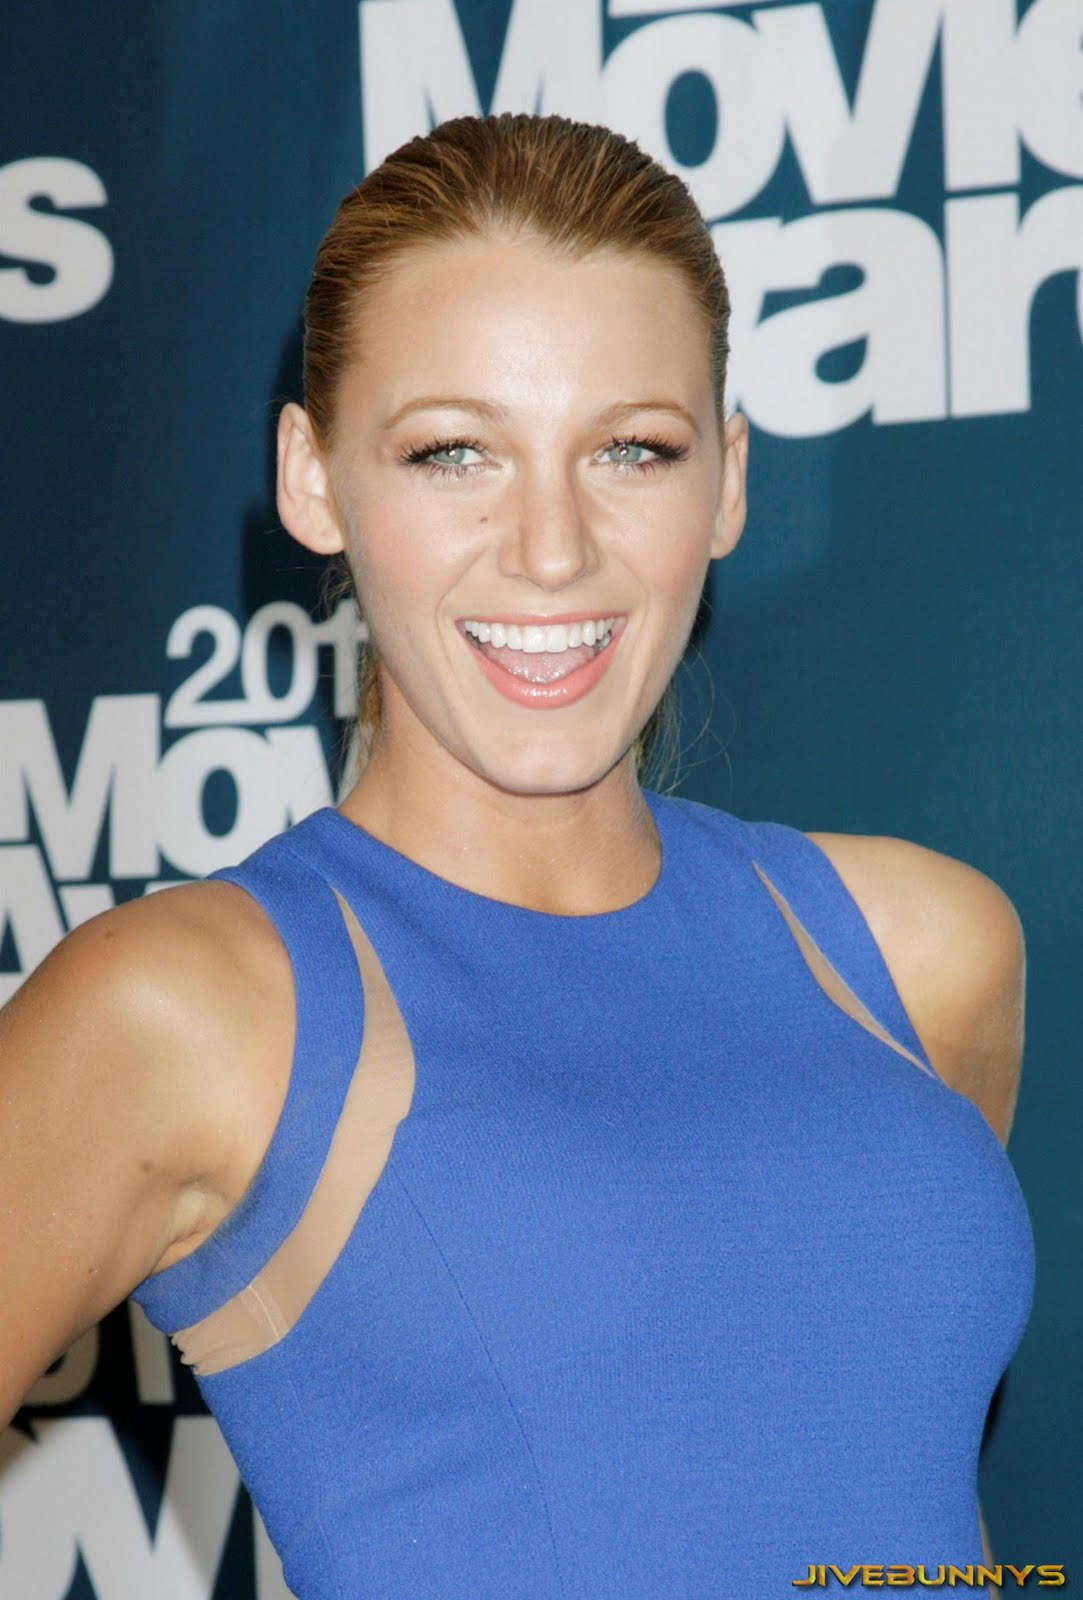 http://3.bp.blogspot.com/-TaG34Lxhtx0/Te4r_4O_5tI/AAAAAAACNYA/lAXMRG4sdTk/s1600/blake-lively-actress-celebrity-1021.jpg